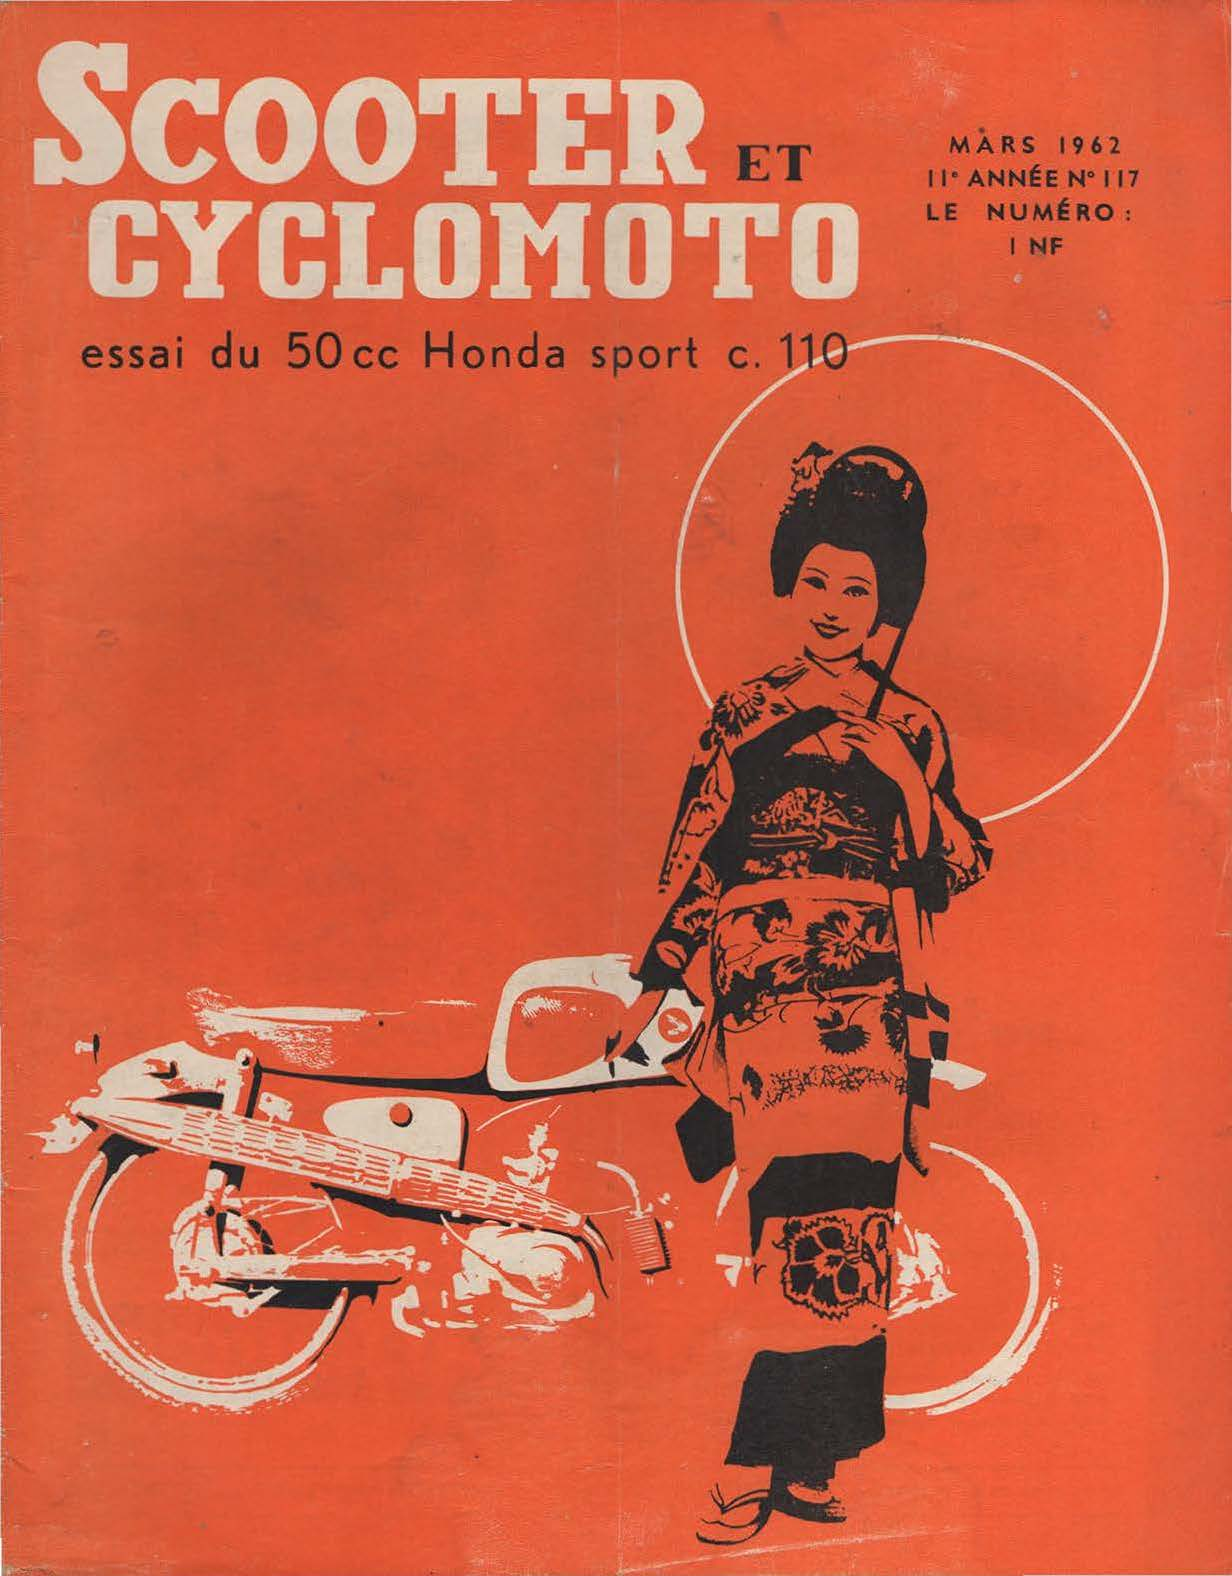 Scooter et Cyclomoto - Mars 1962 - No. 117